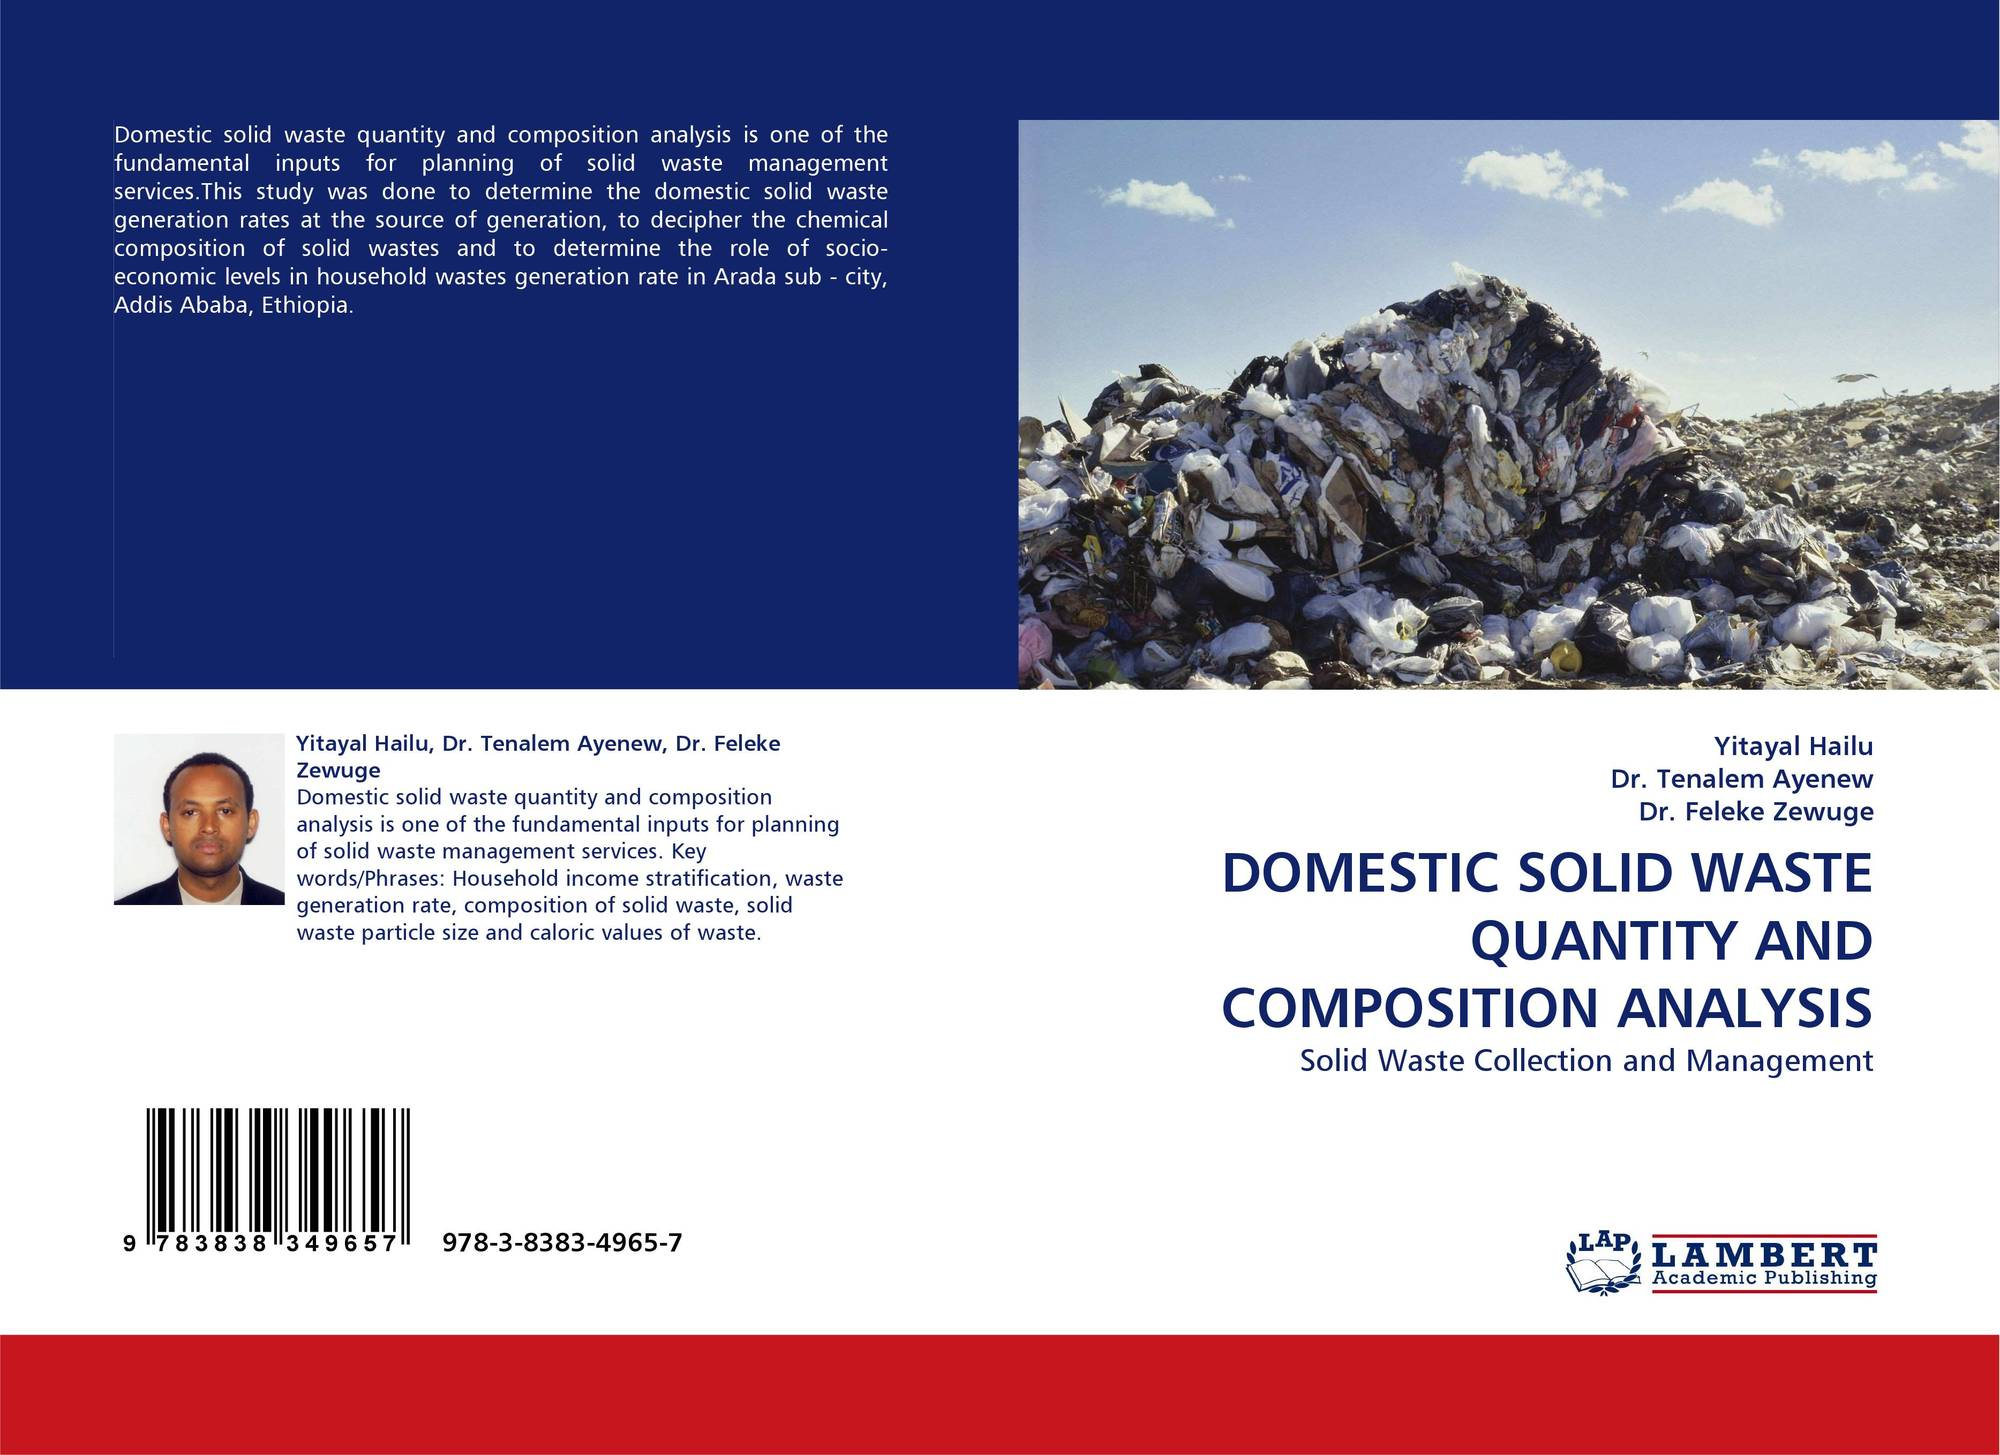 thesis on solid waste management in ethiopia Future megacities - solid waste management in addis ababa solid waste management in addis ababa, ethiopia 1 challenge rapidly growing cities are generating increasing volumes of waste the effectiveness of solid waste collection and disposal systems cannot keep pace.